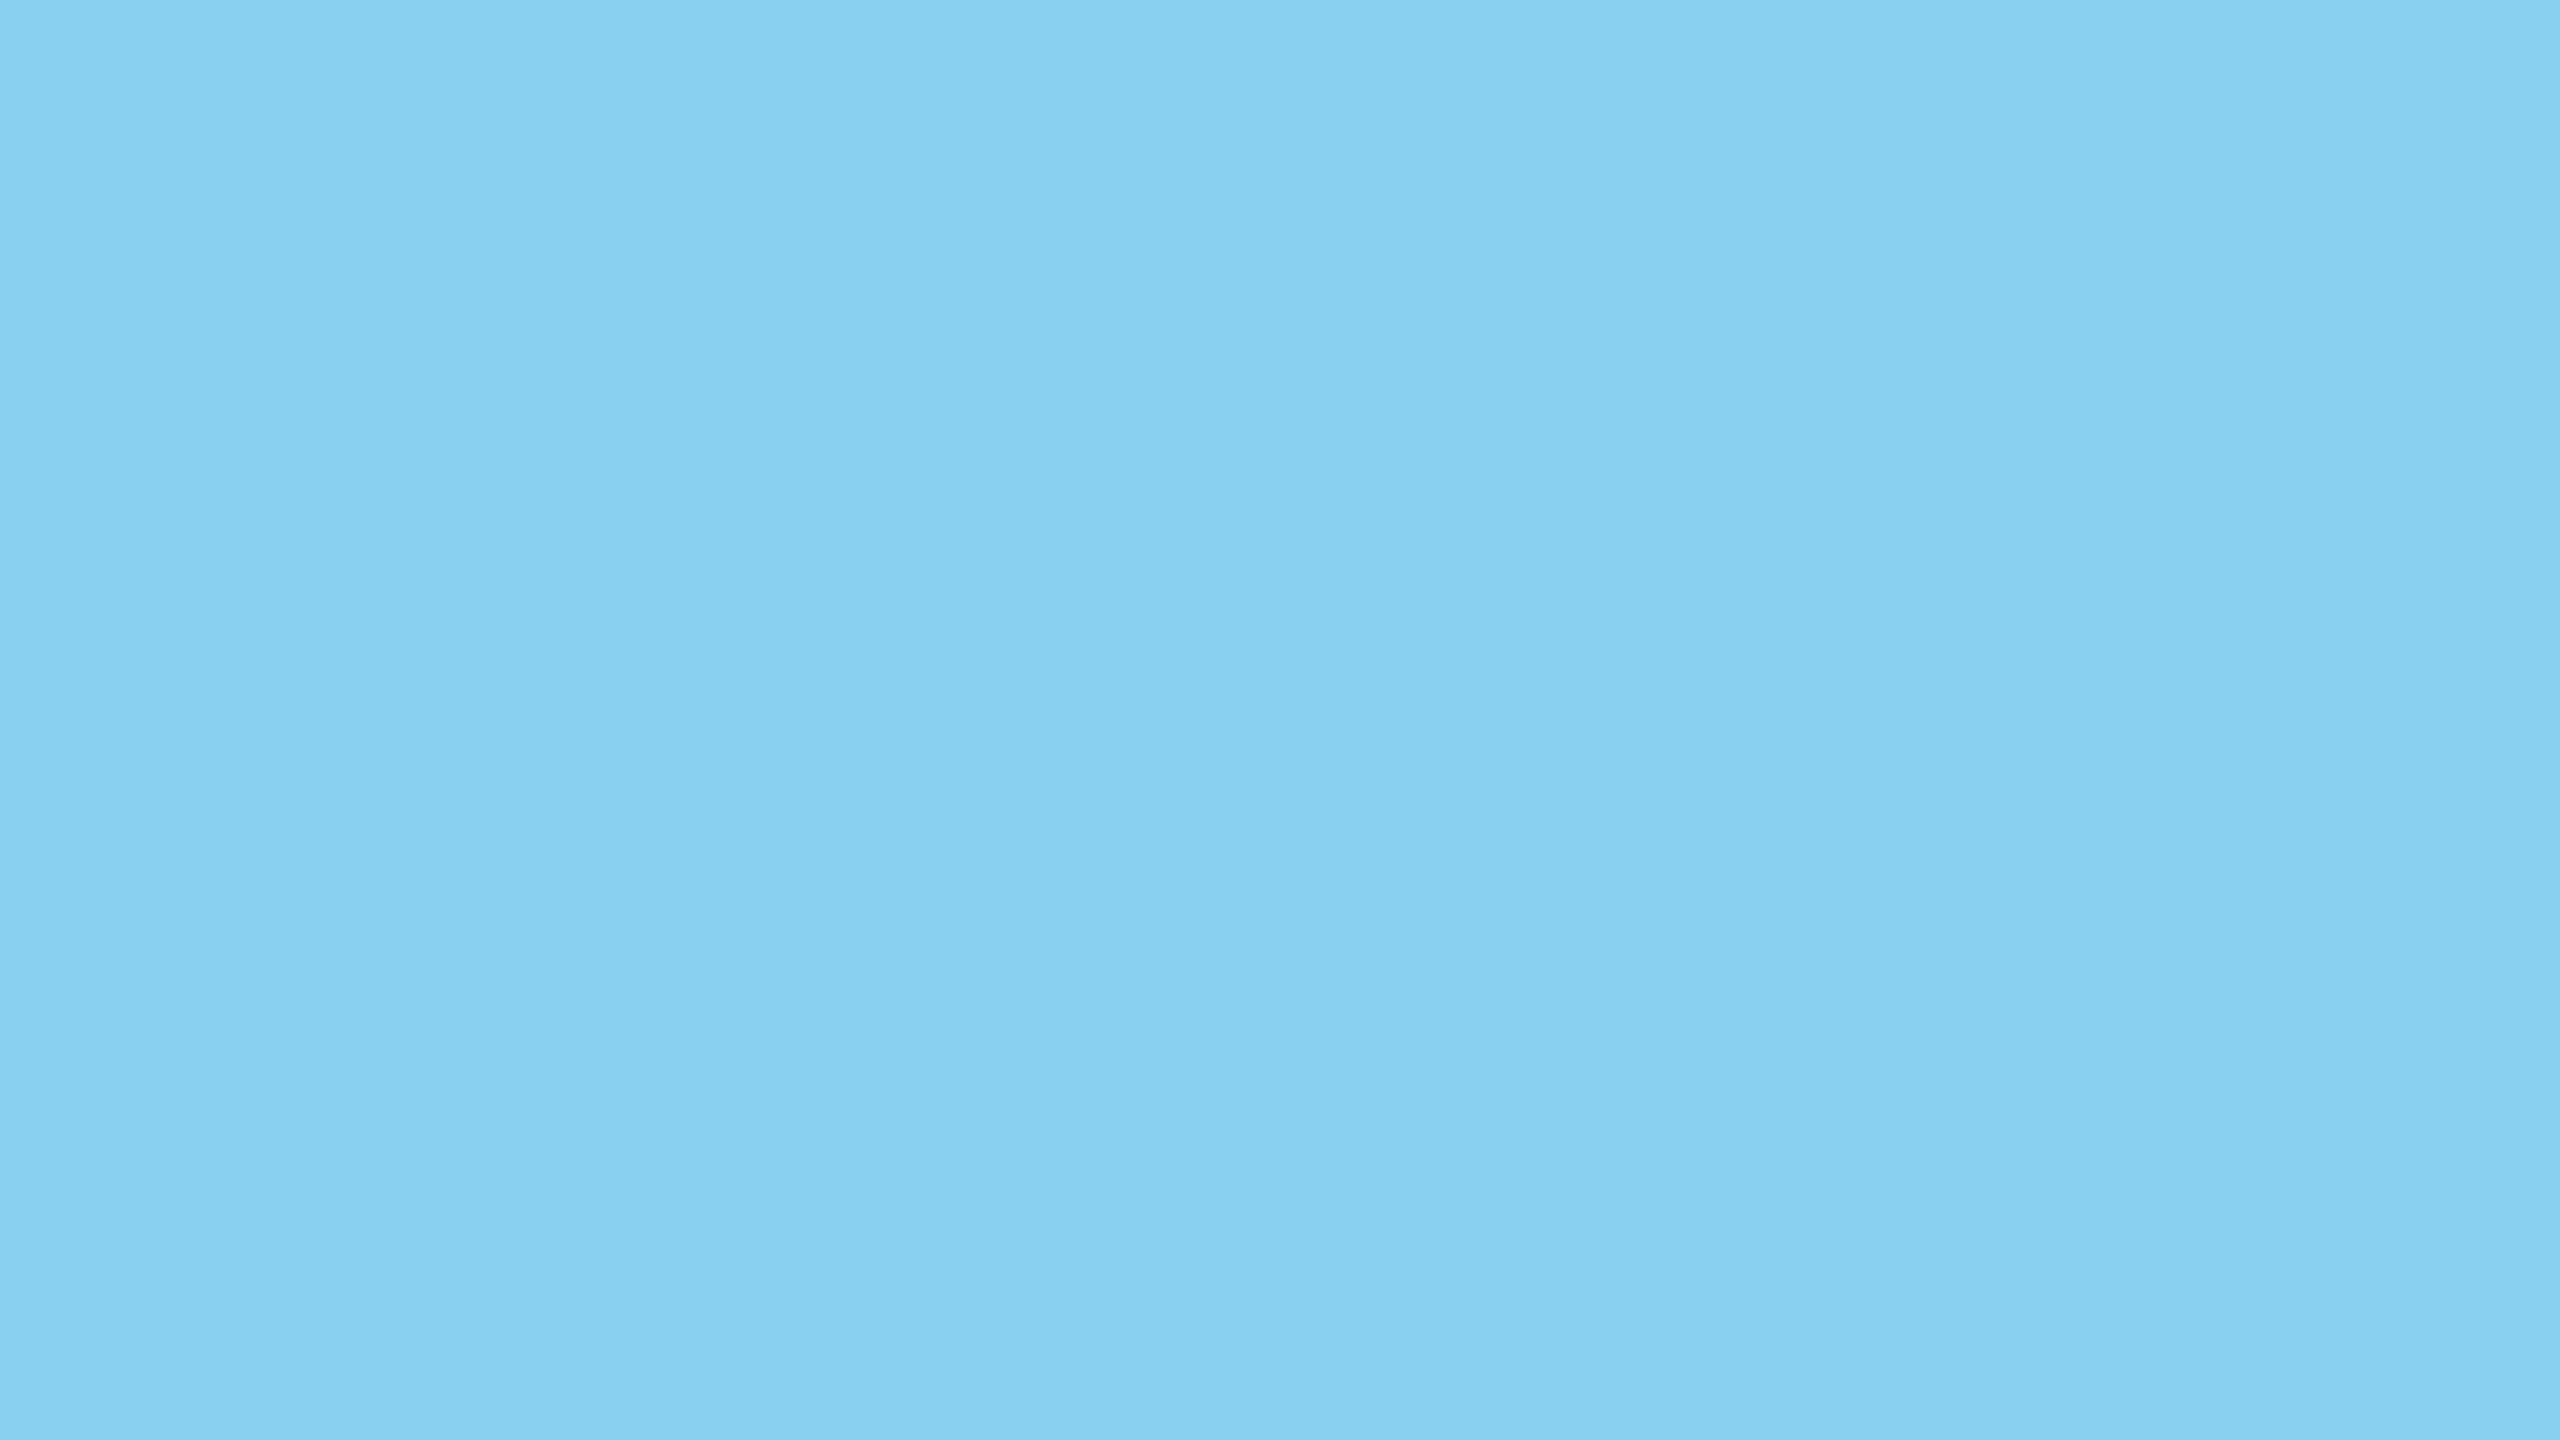 2560x1440 resolution Baby Blue solid color background view and 2560x1440